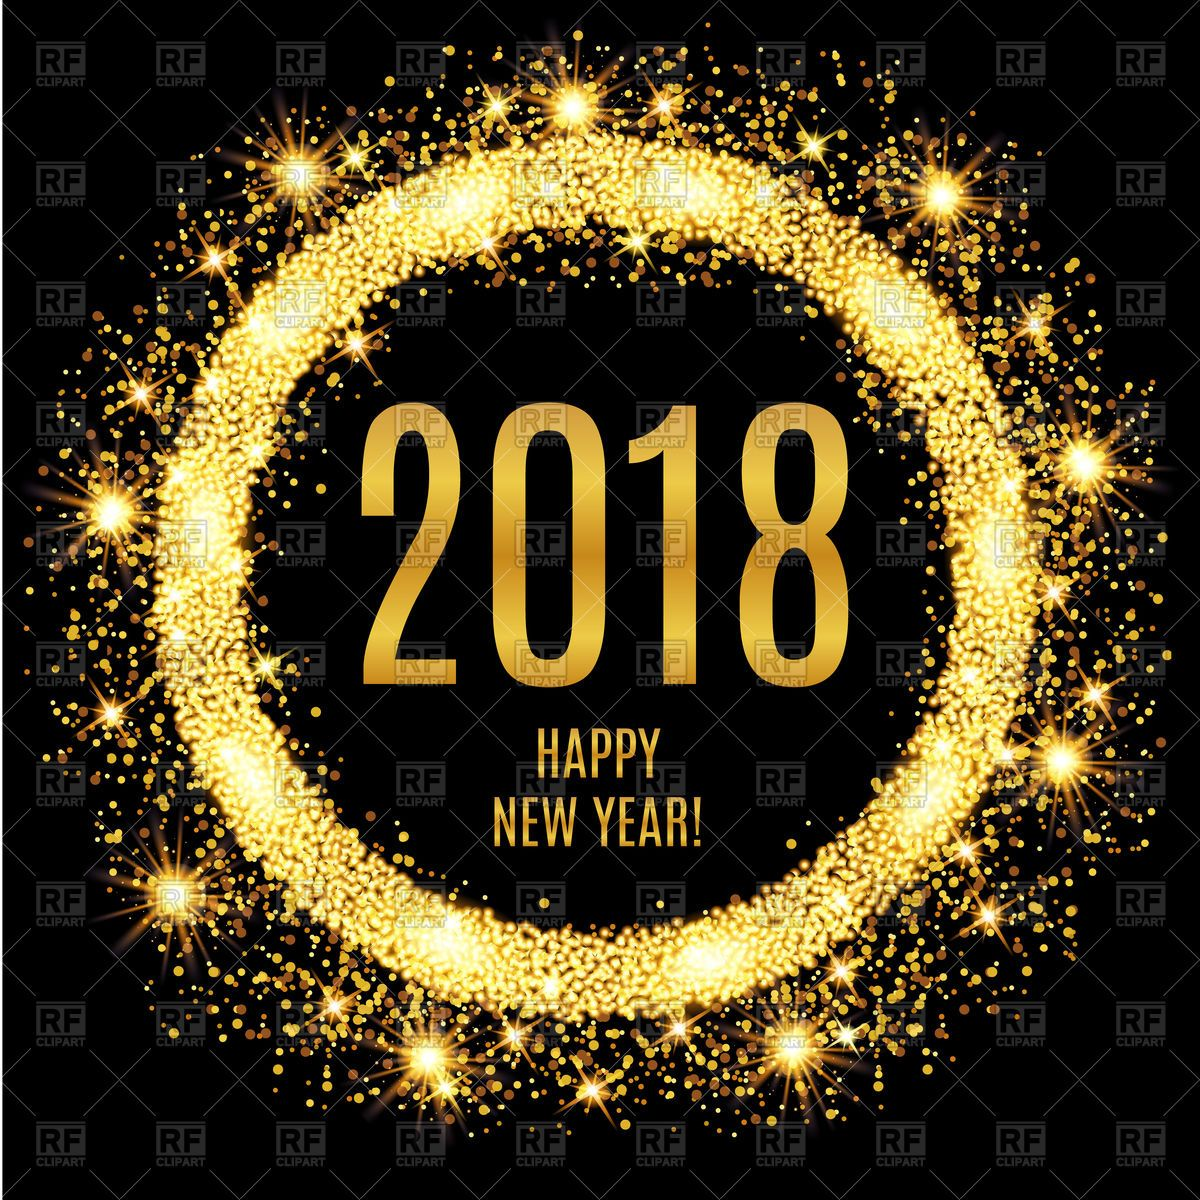 New years eve 2018 clipart png royalty free library 2018 Happy New Year glowing gold background Vector Image ... png royalty free library